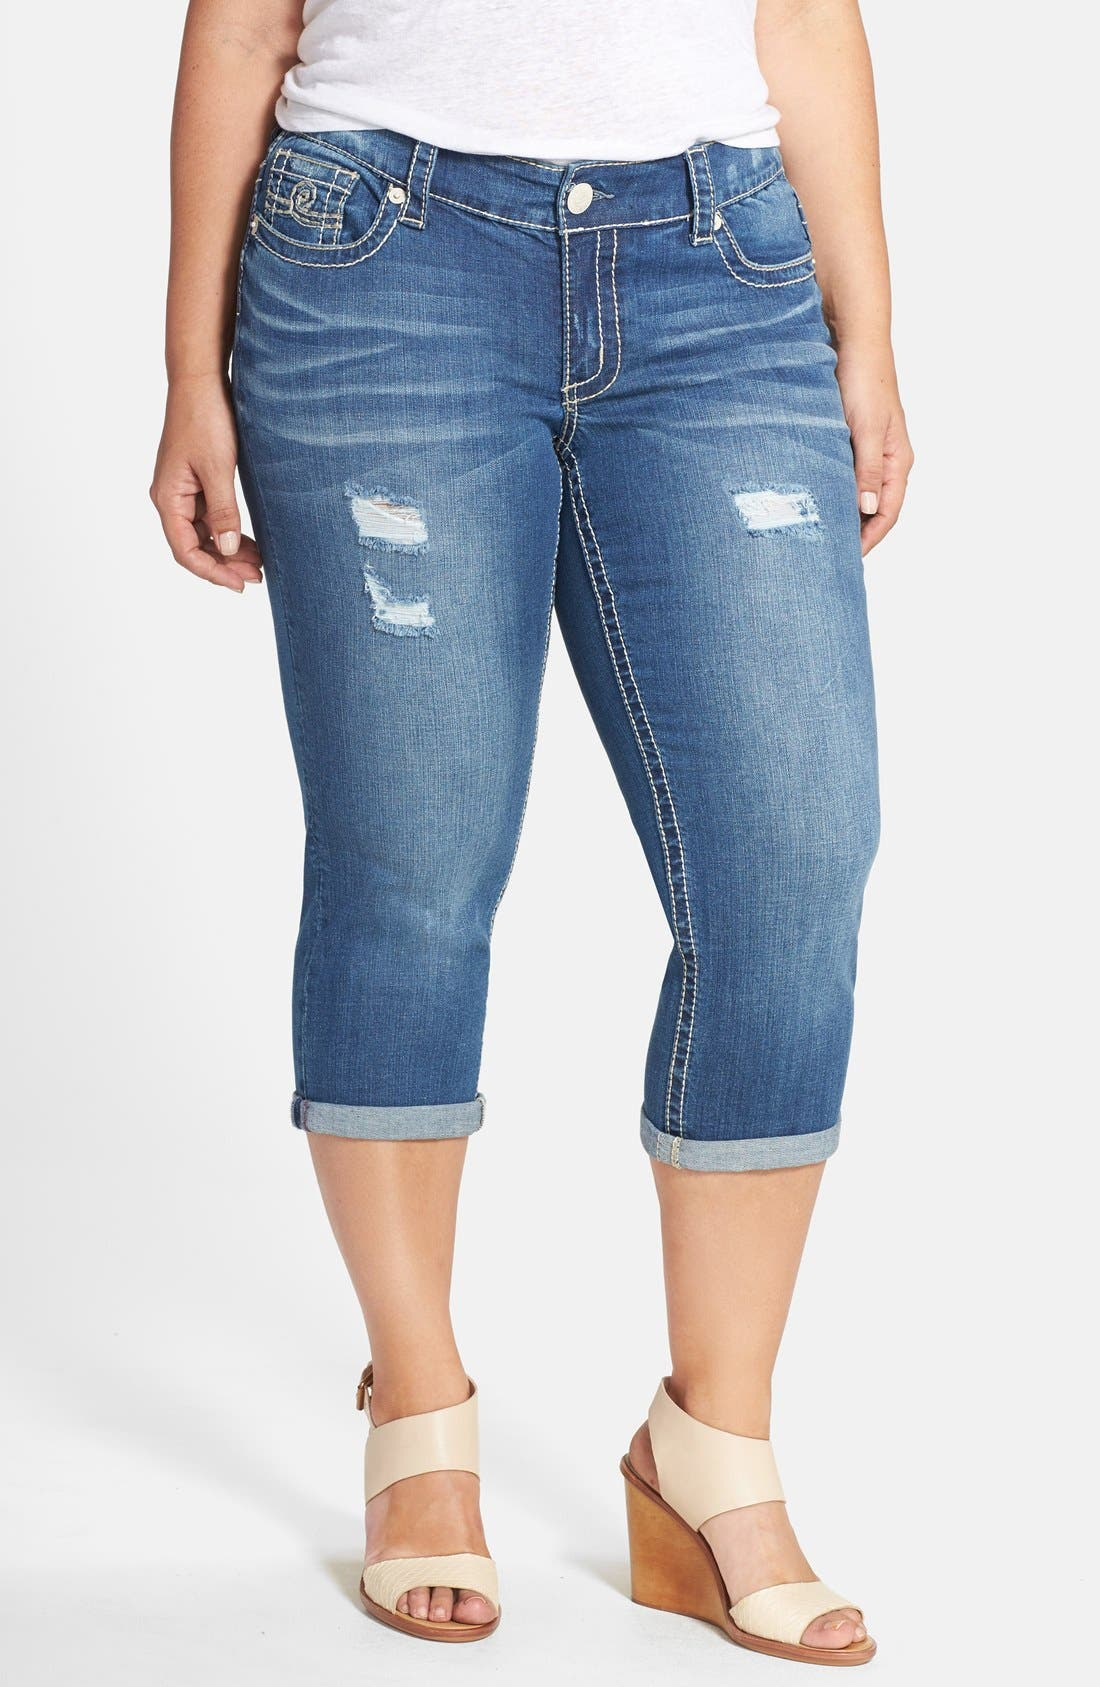 Alternate Image 1 Selected - Seven7 Distressed Rolled Cuff Crop Skinny Jeans (Bishop) (Plus Size)